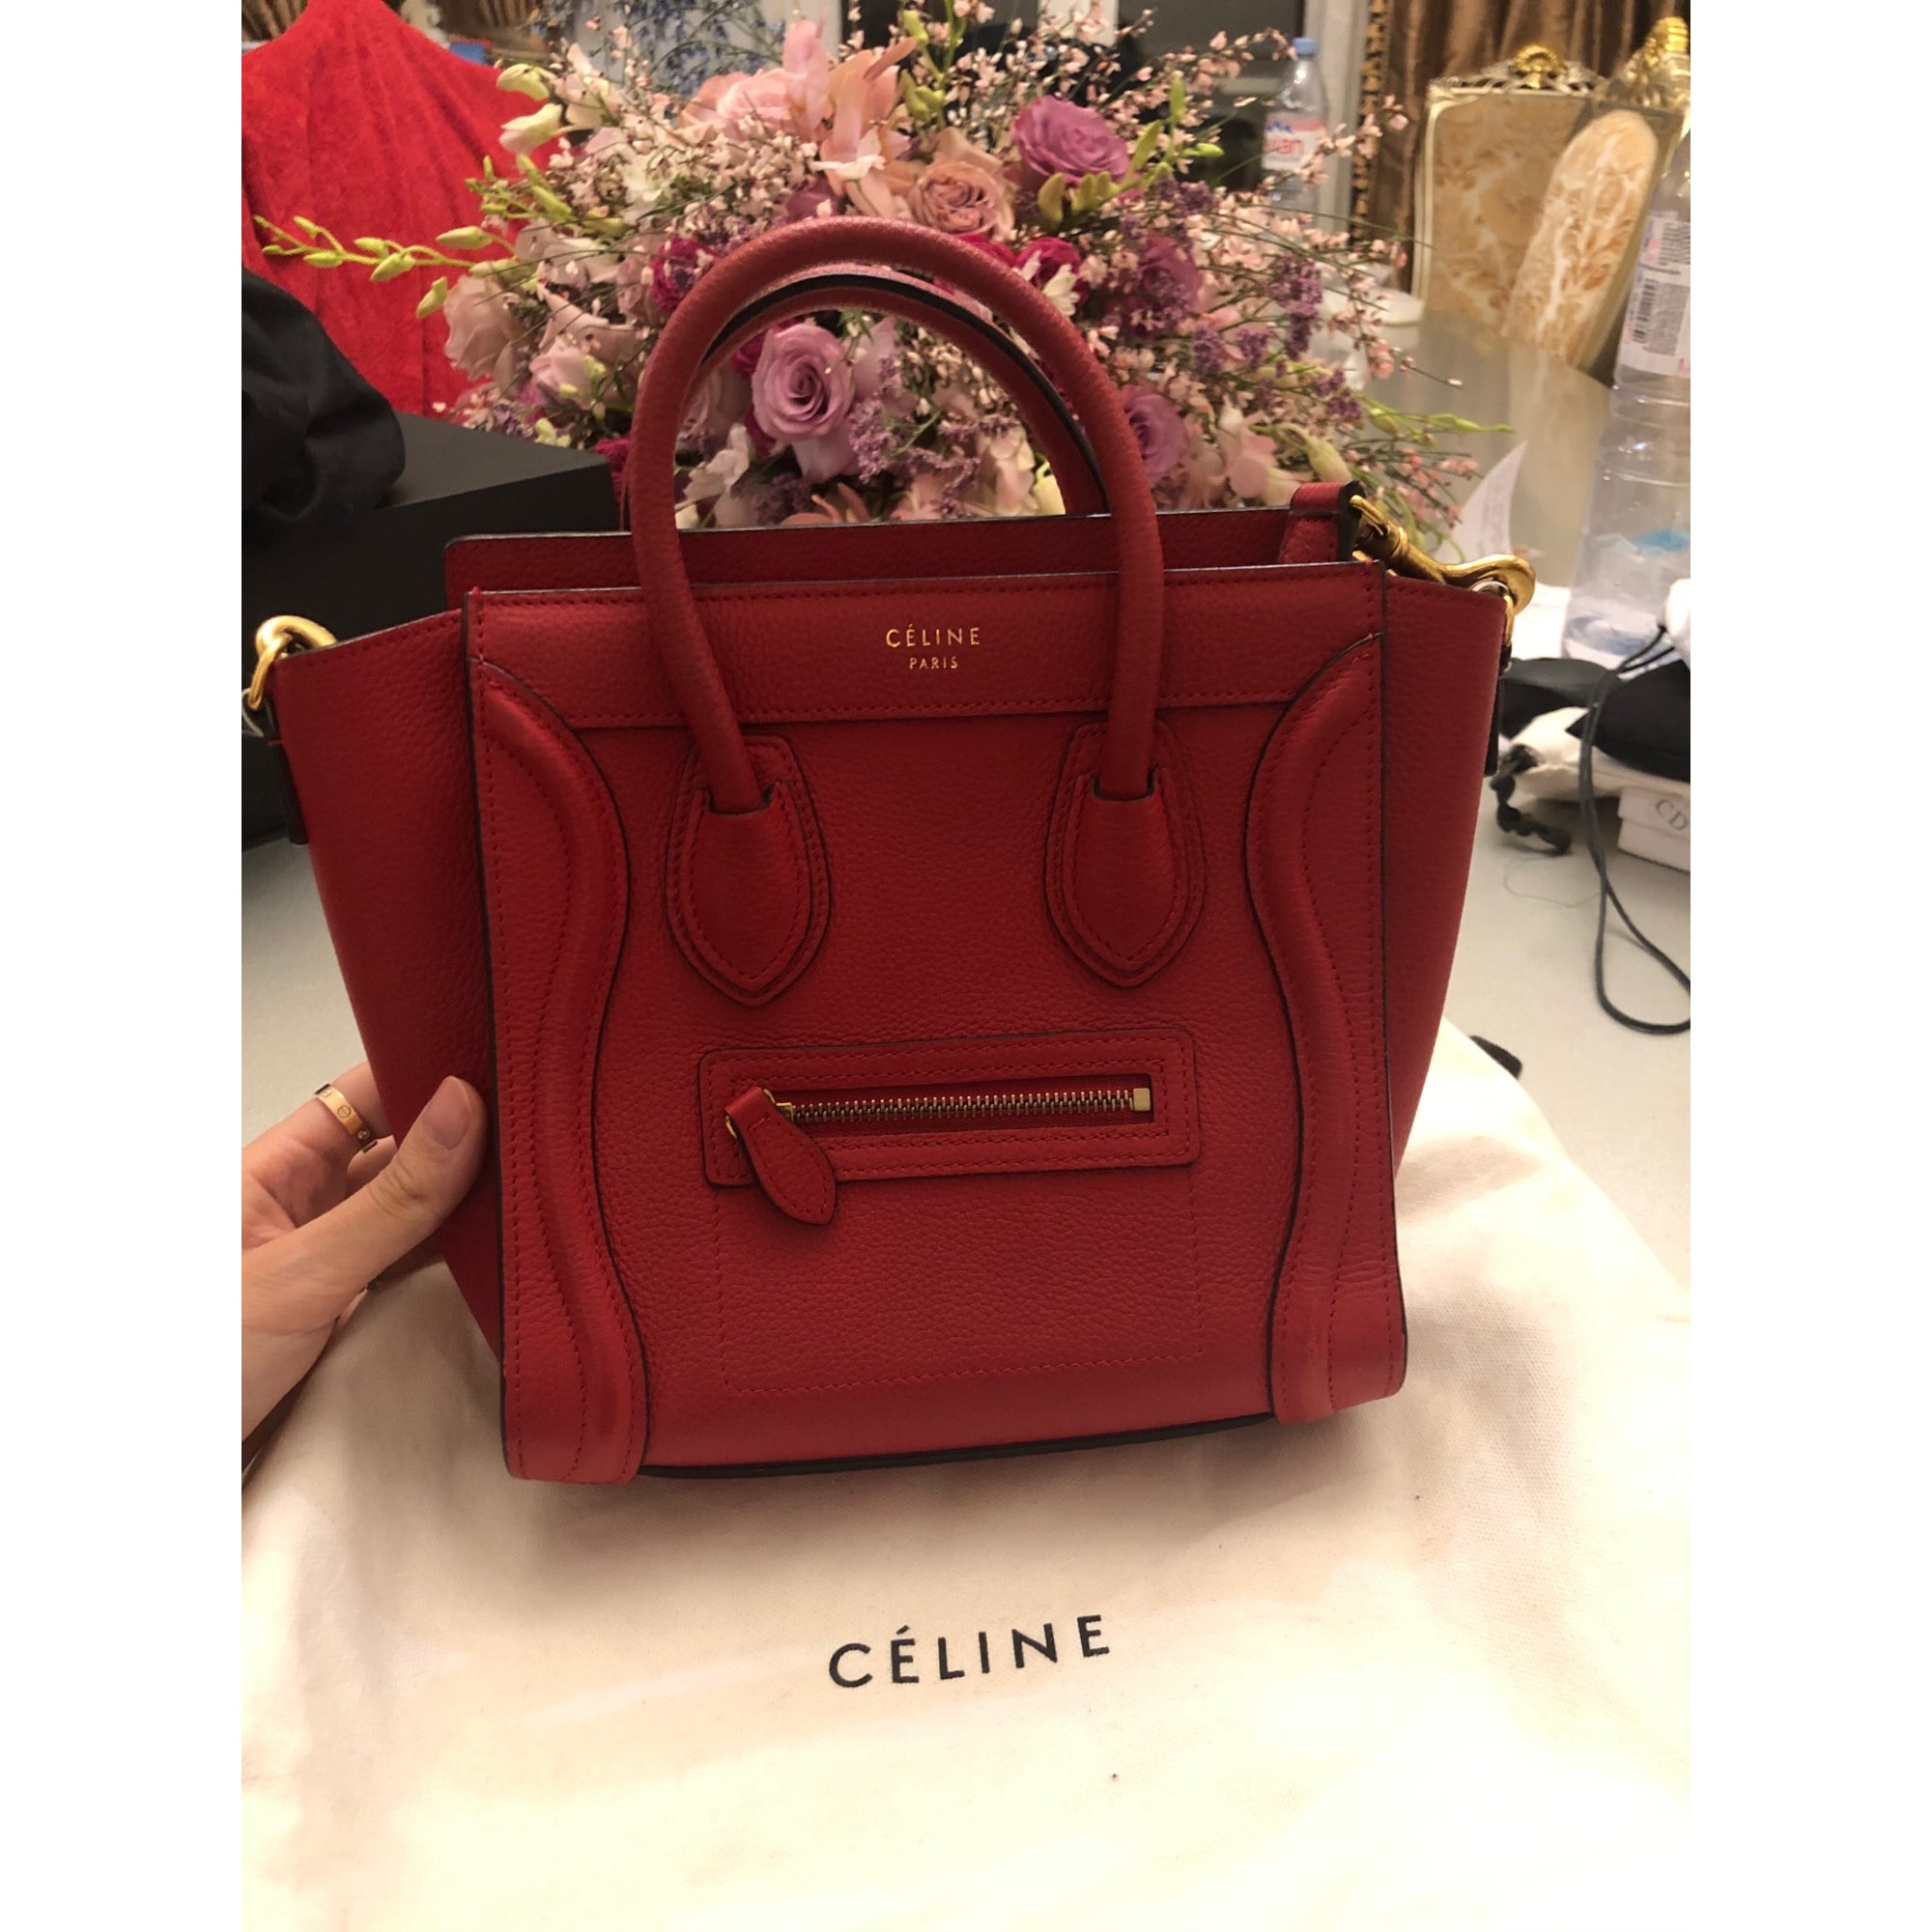 Sac à main en cuir CÉLINE Luggage Rouge, bordeaux